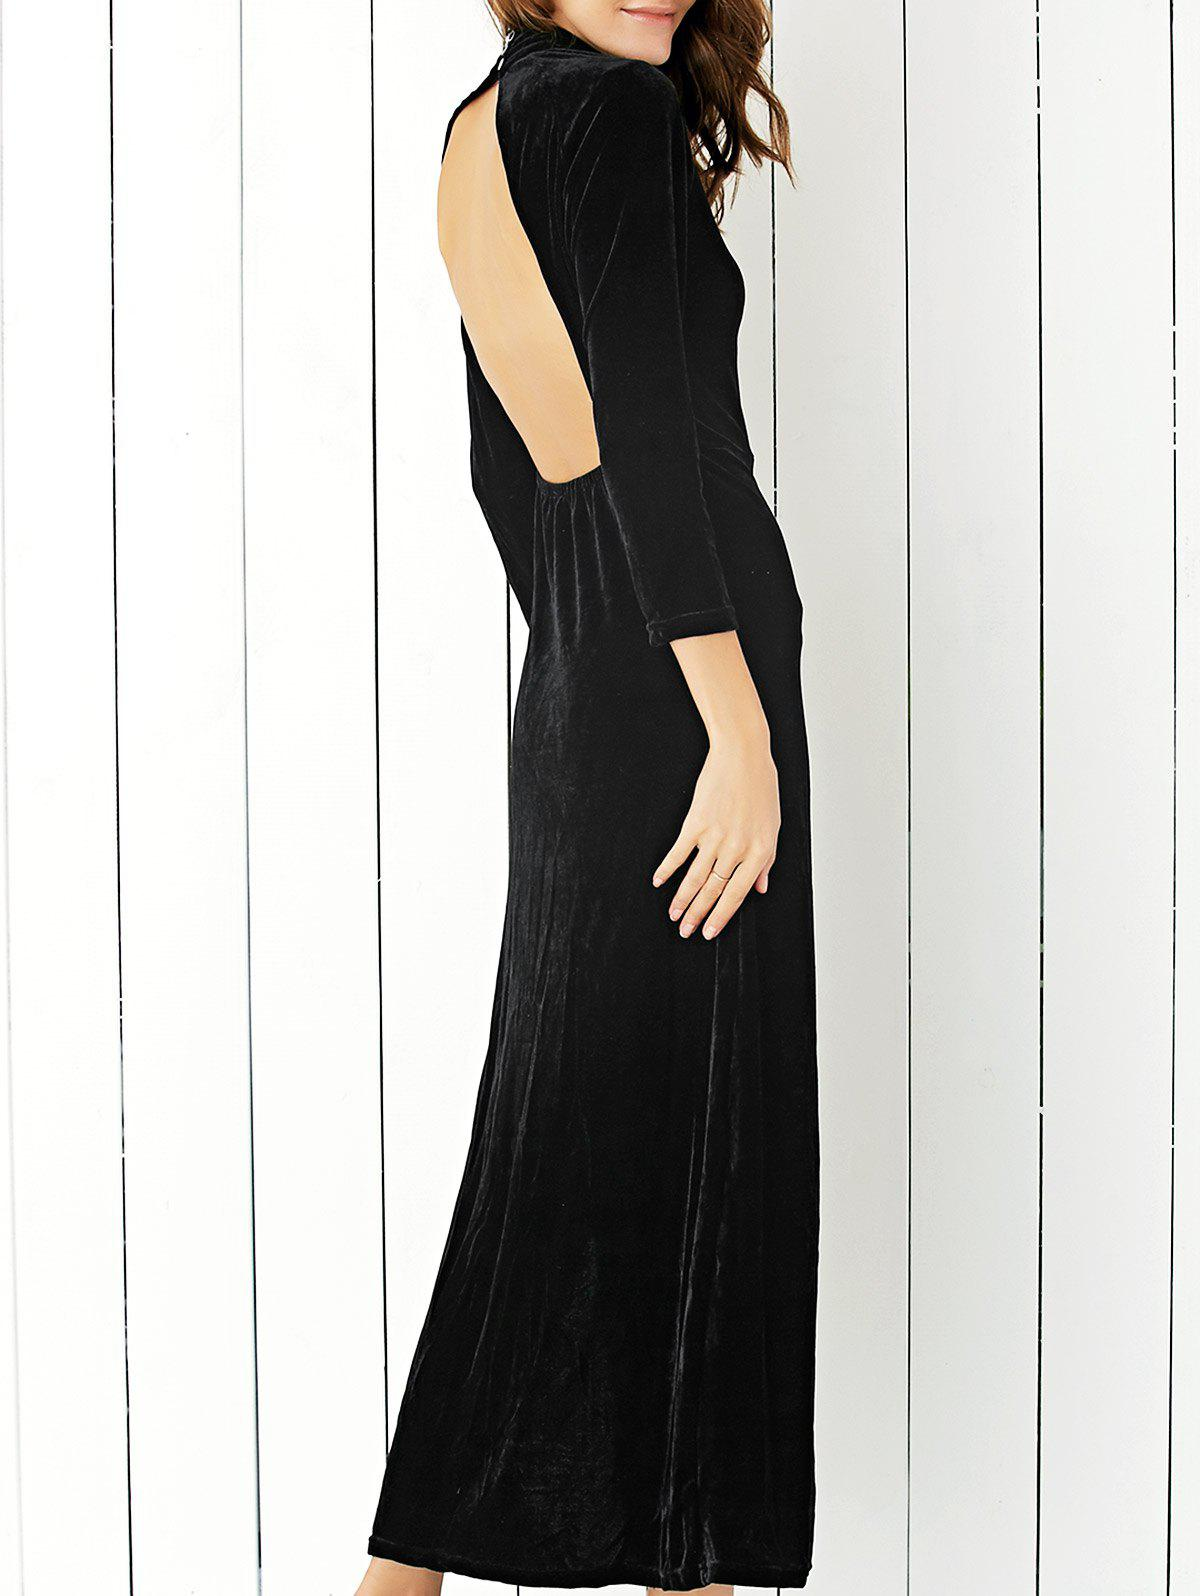 Attractive Side Slit Opne Back Dress For Women - BLACK 2XL